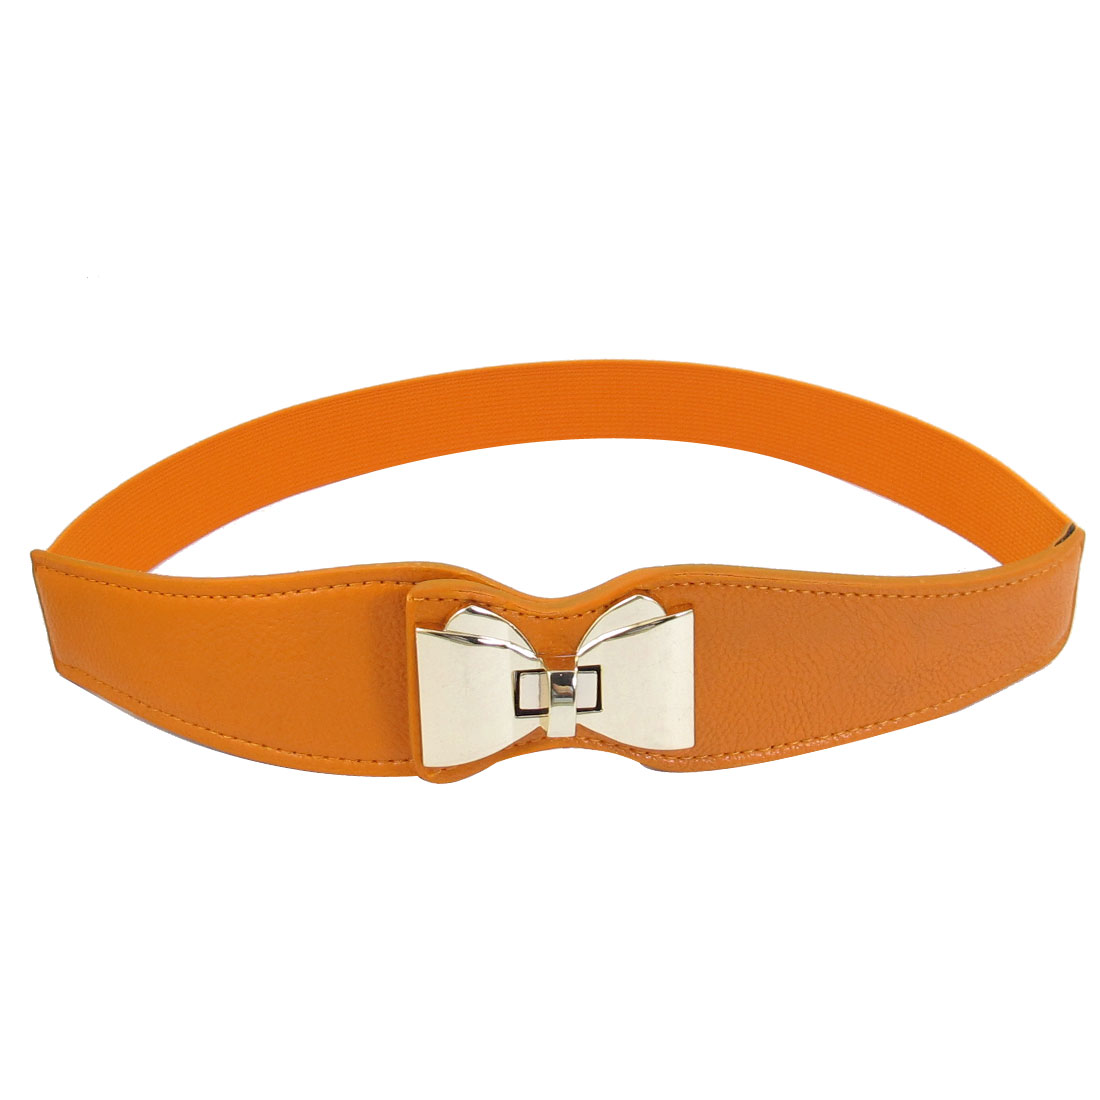 Turn Lock Metal Buckle Bowknot Decor Elastic Orange Waistband Belt for Lady